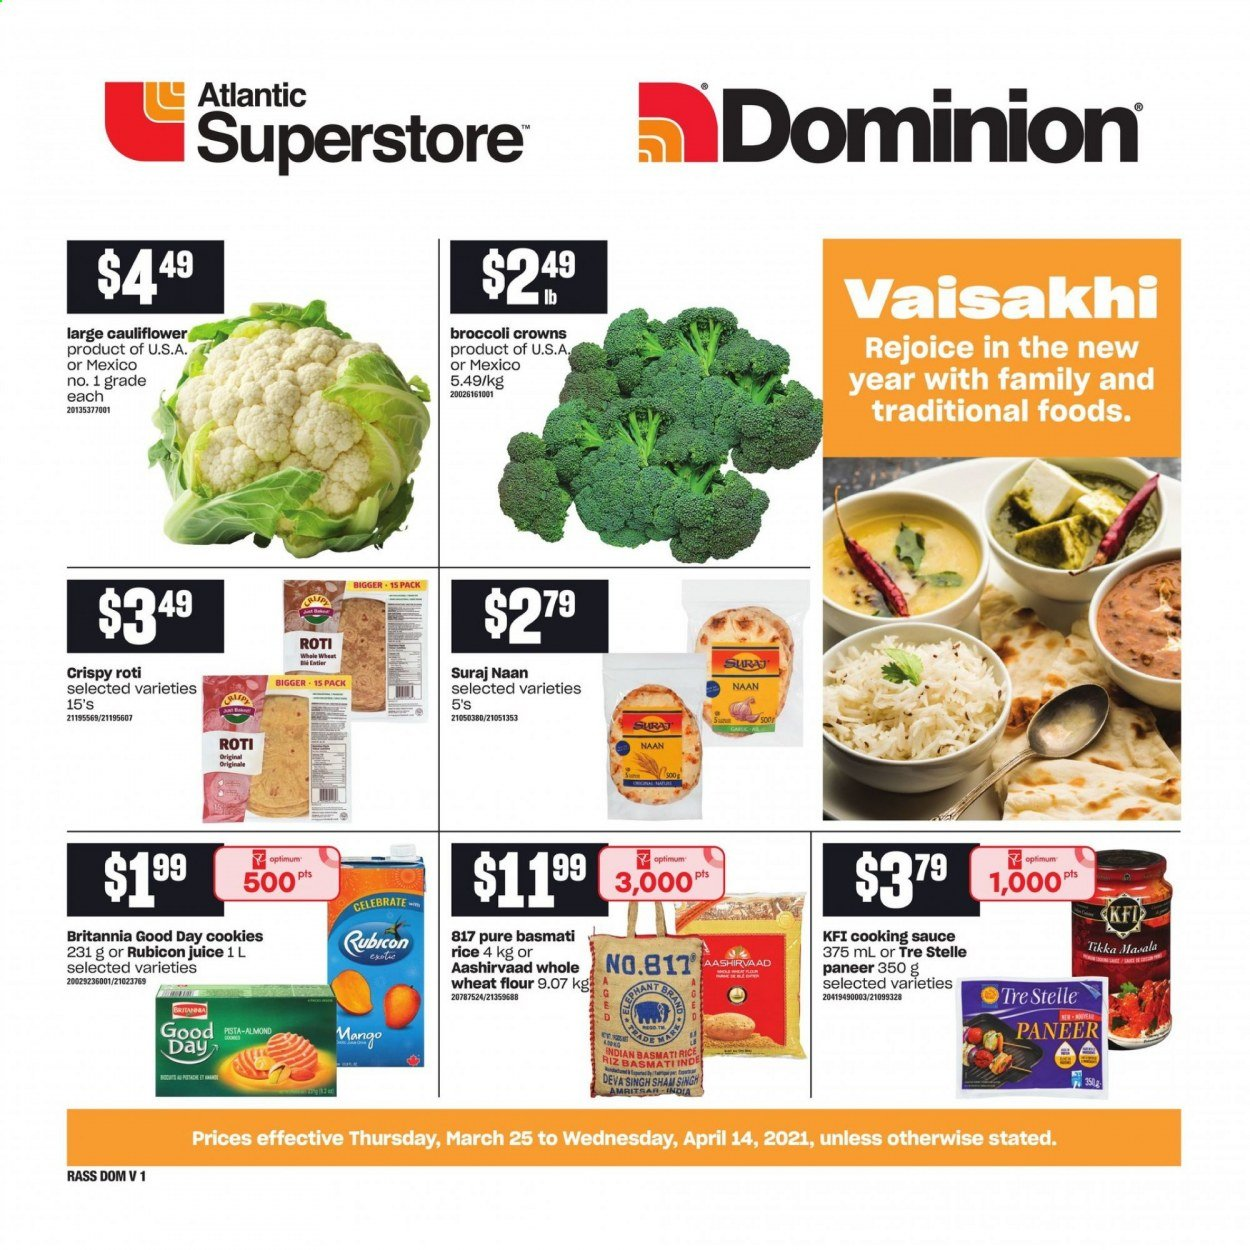 Atlantic Superstore Flyer  - March 25, 2021 - April 14, 2021. Page 1.